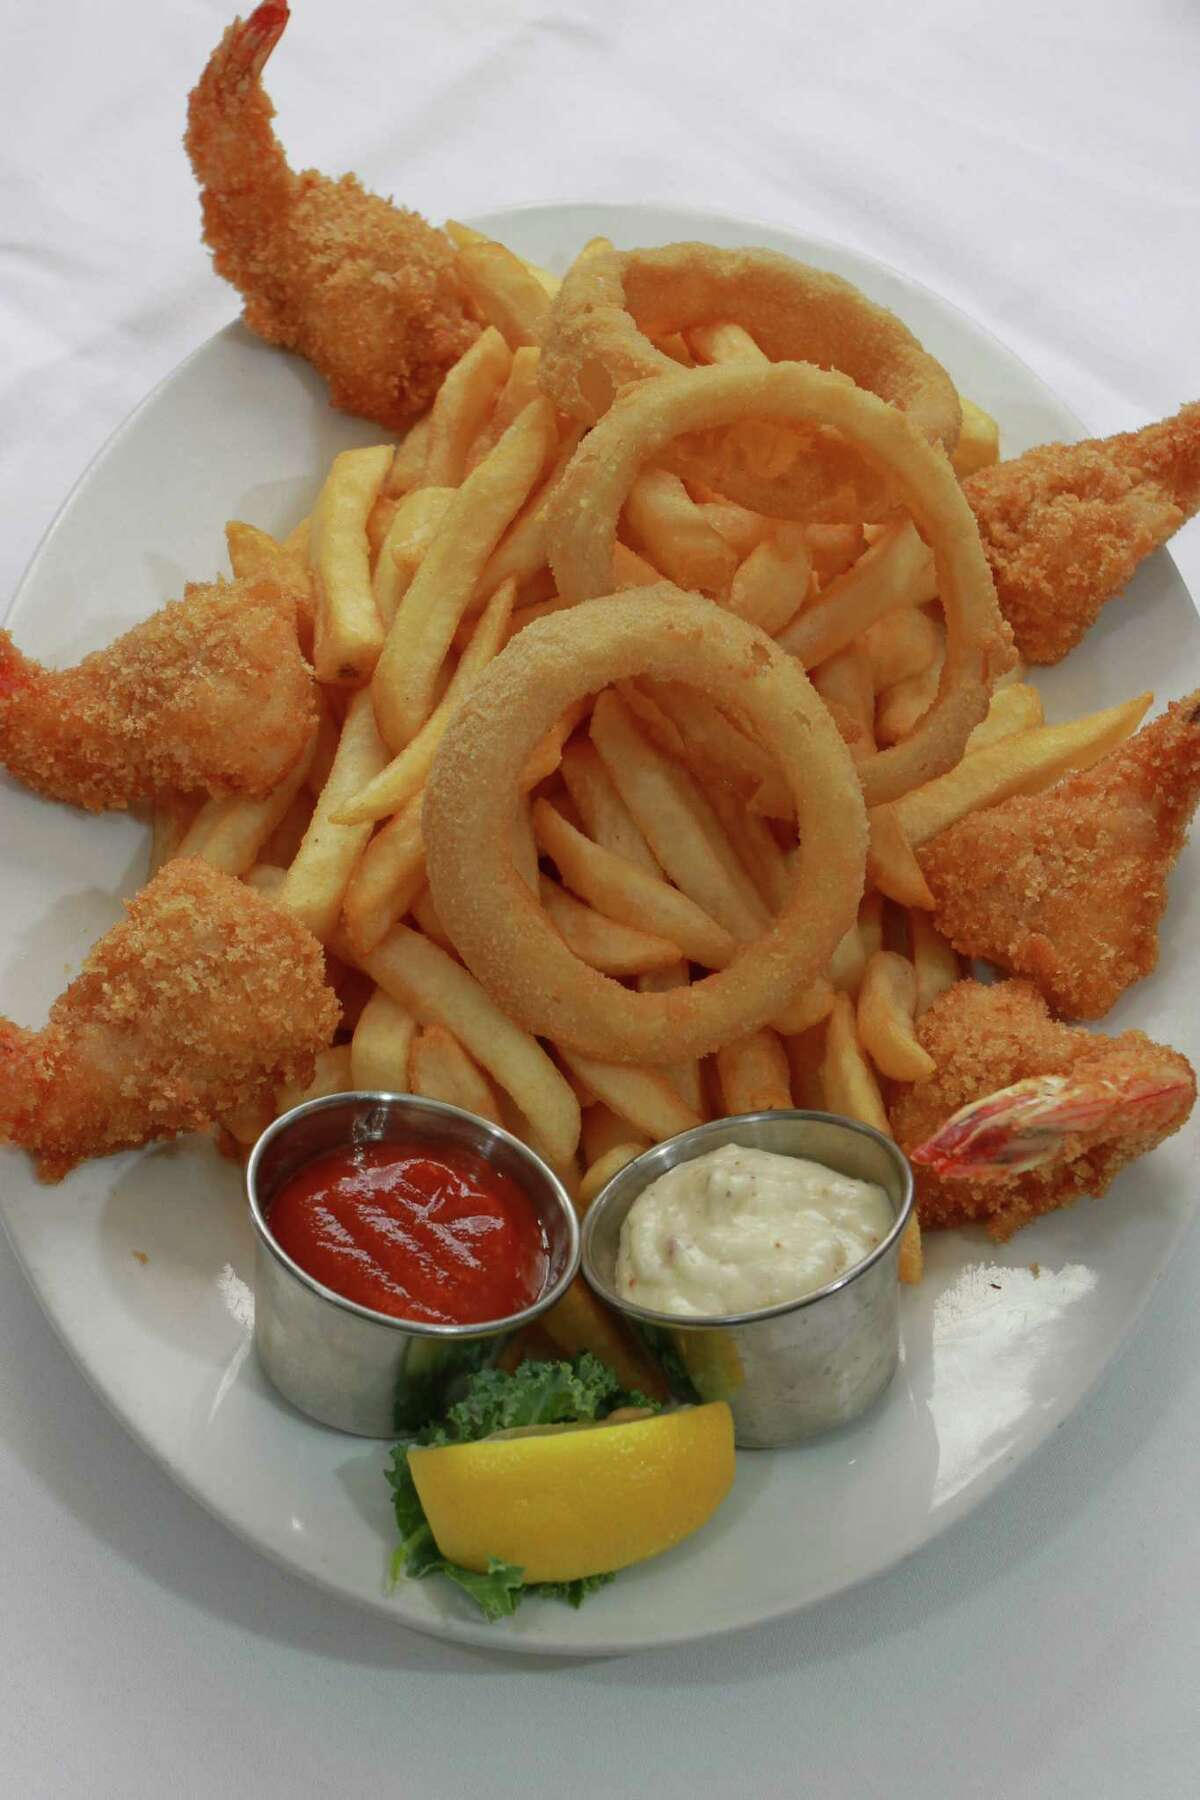 Famous Gulf Fried Shrimp with homemade remolaude and cocktail sauce at Christie's Steaks & Seafood.